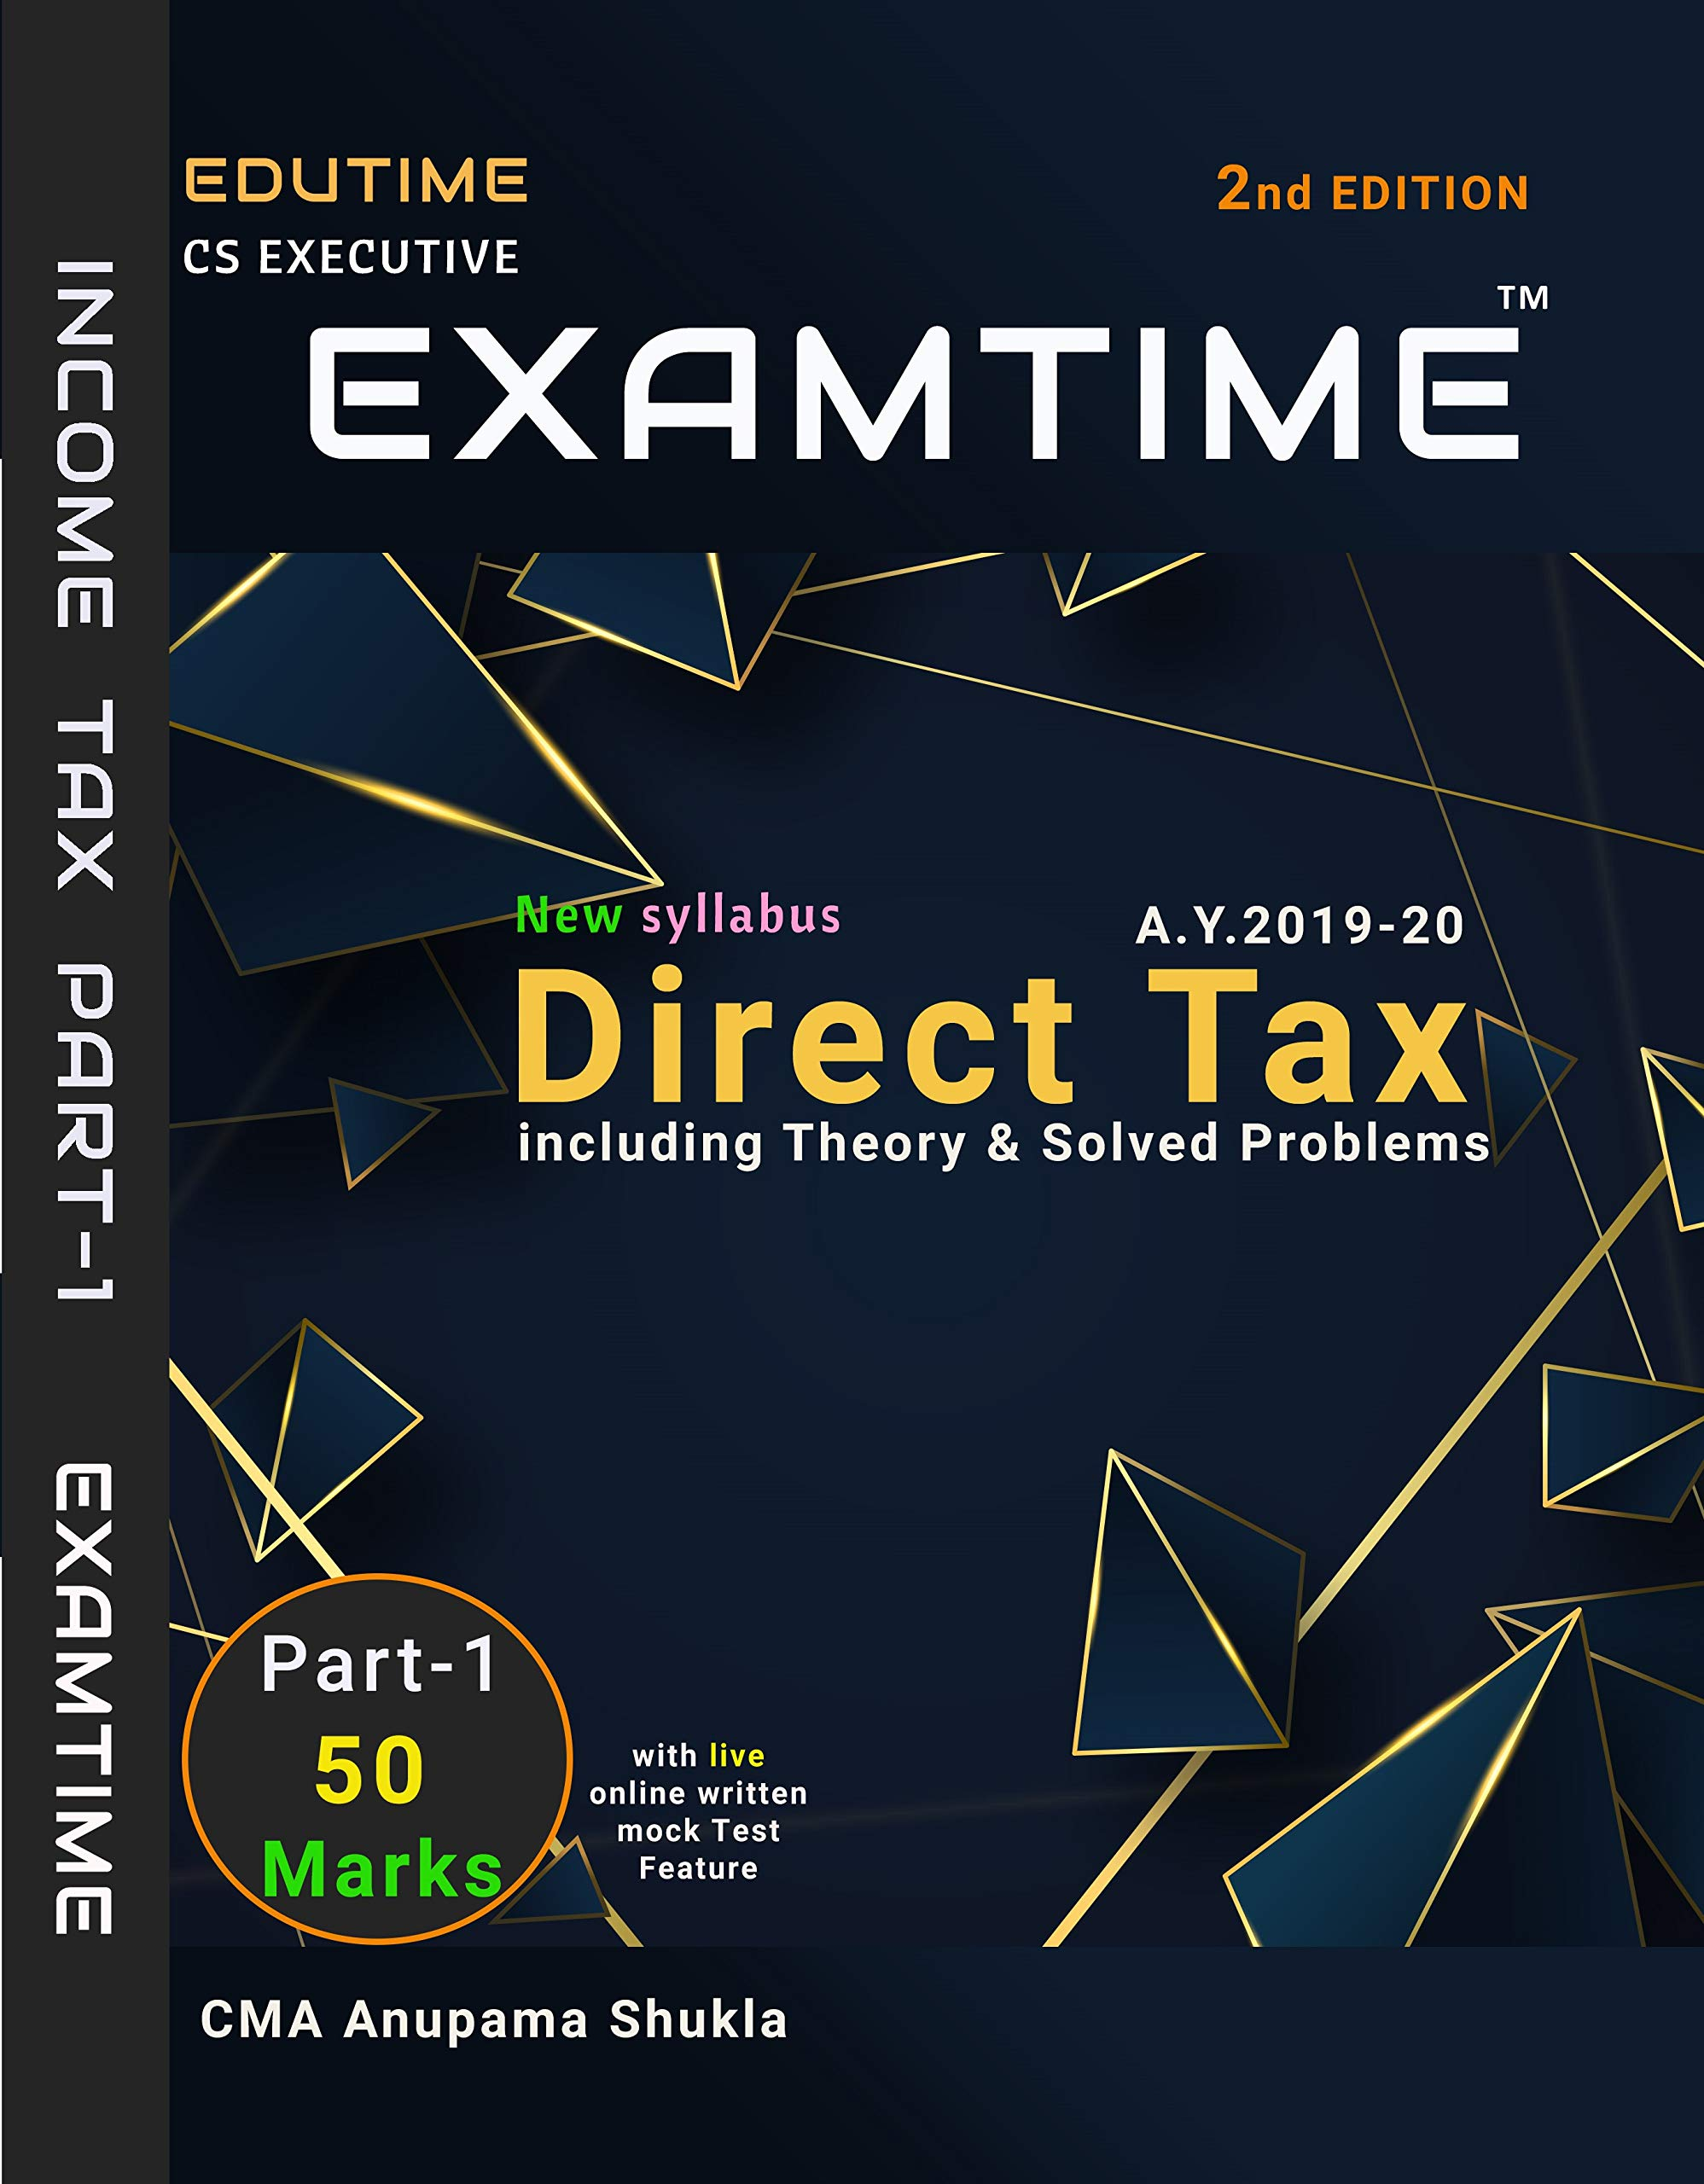 Buy TAX LAWS AND PRACTICE -MCQS FOR CS EXECUTIVE BY YOGENDRA BANGAR